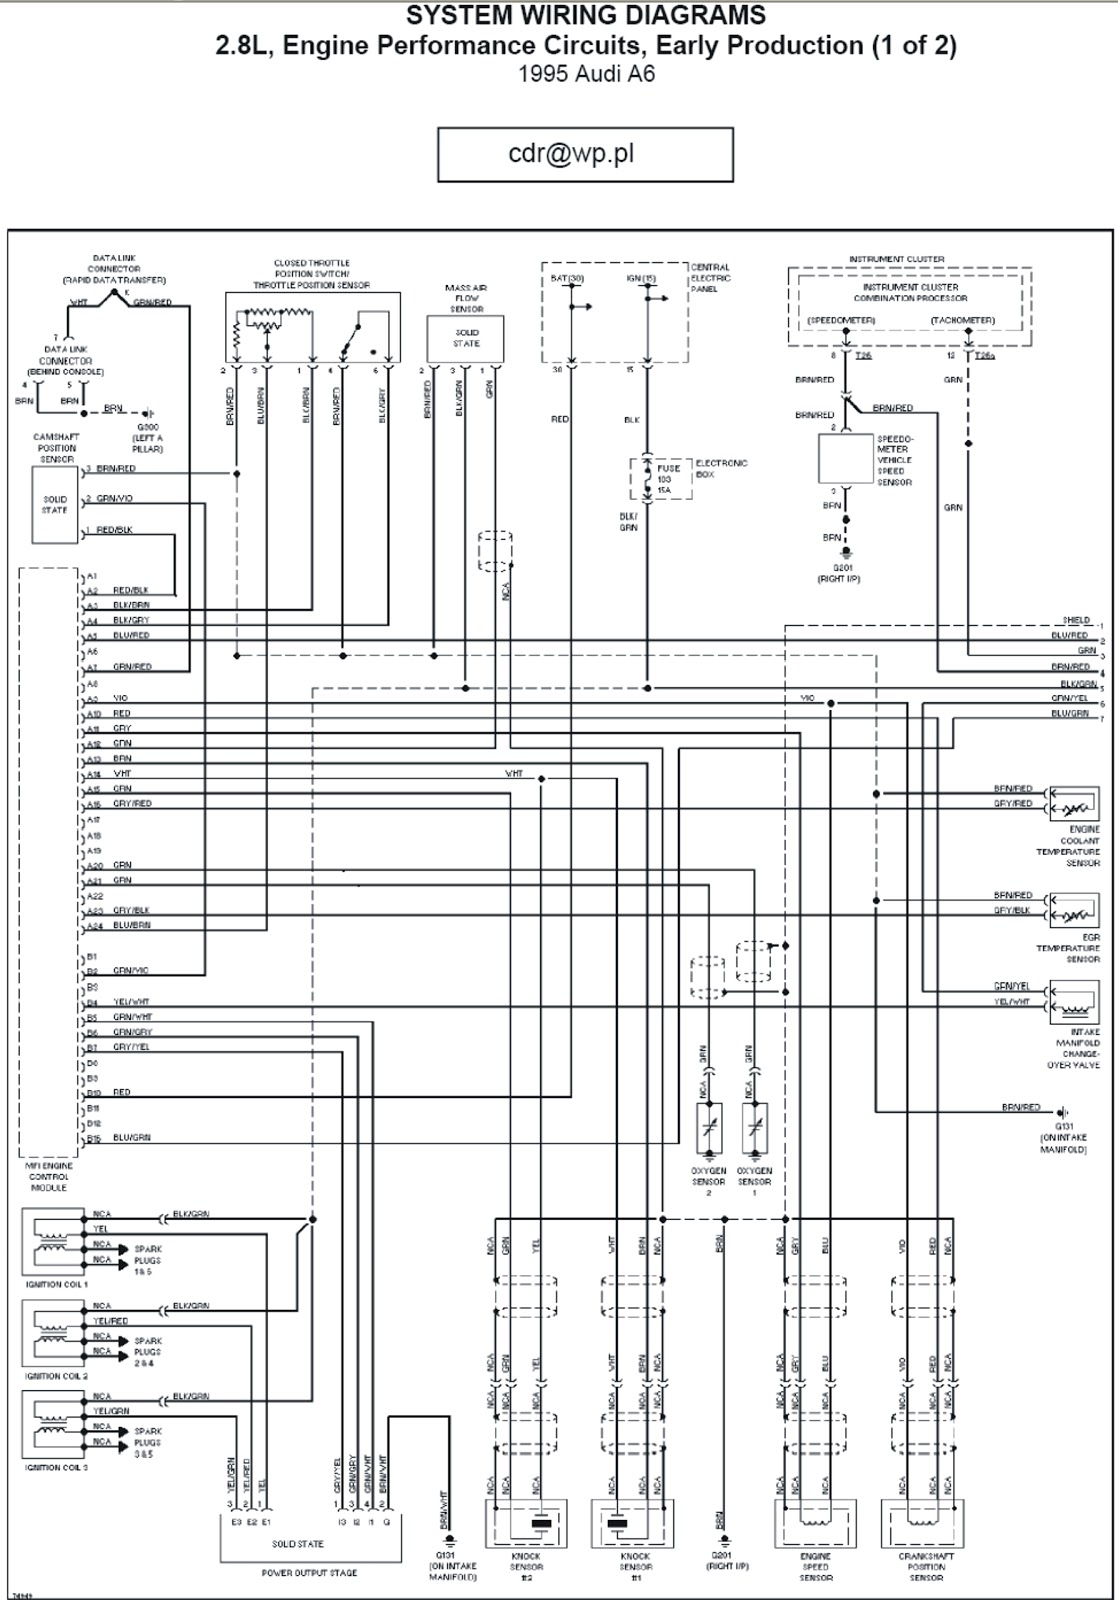 Fantastic wiring diagram for parrot ck3100 illustration wiring fine parrot ck3100 wiring diagram ford contour stereo wiring cheapraybanclubmaster Gallery